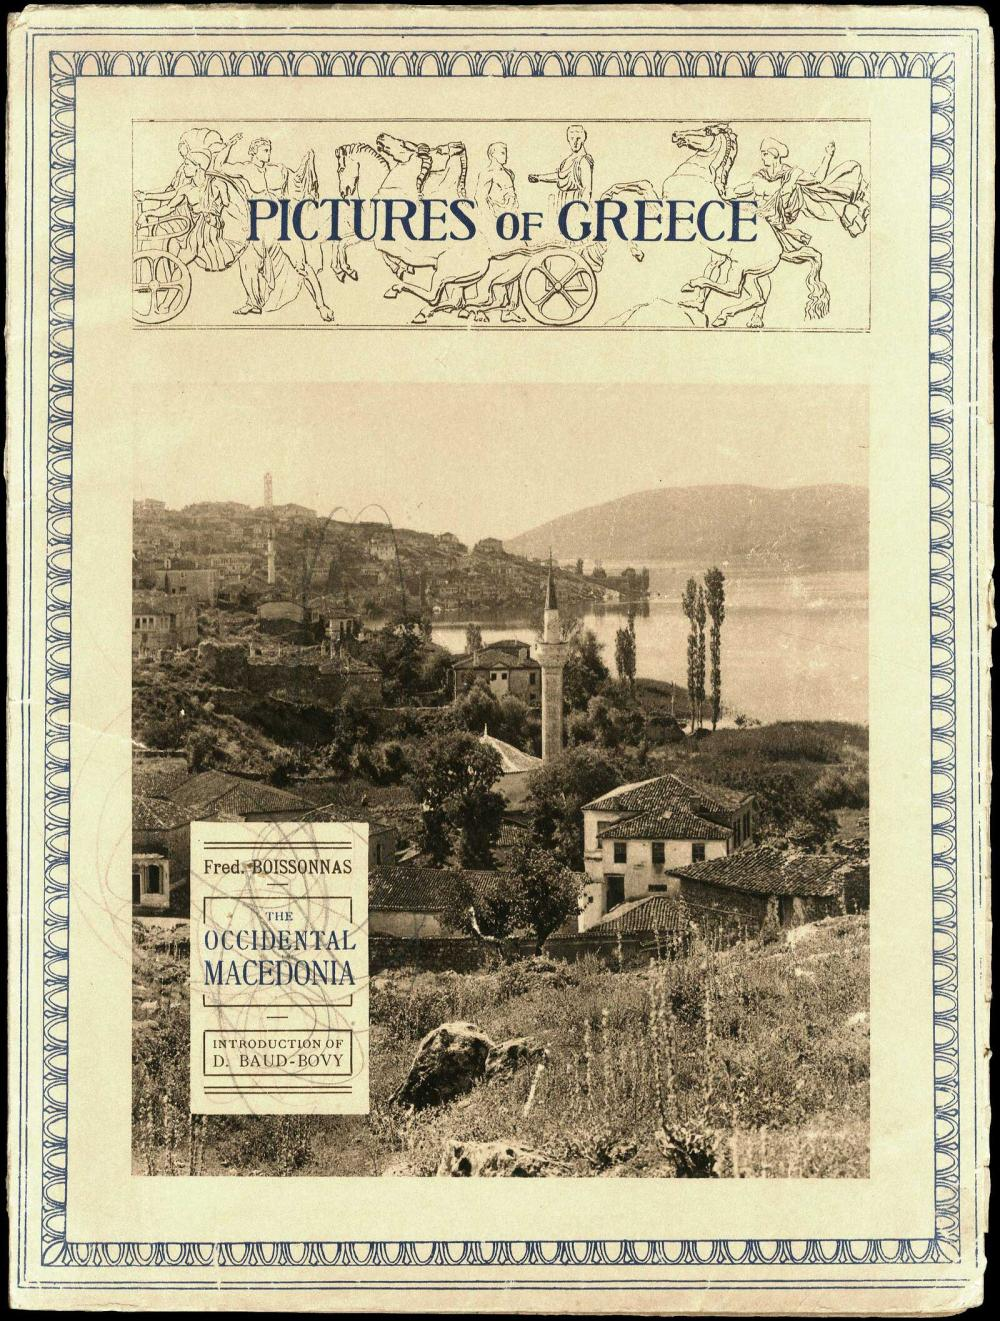 BOISSONNAS Fred, «The Occidental MACEDONIA / Pictures of Greece /photographs of Fred. Boissonnas, introduction of D.... - Greece - PHOTOGRAPHIC BOOKS -